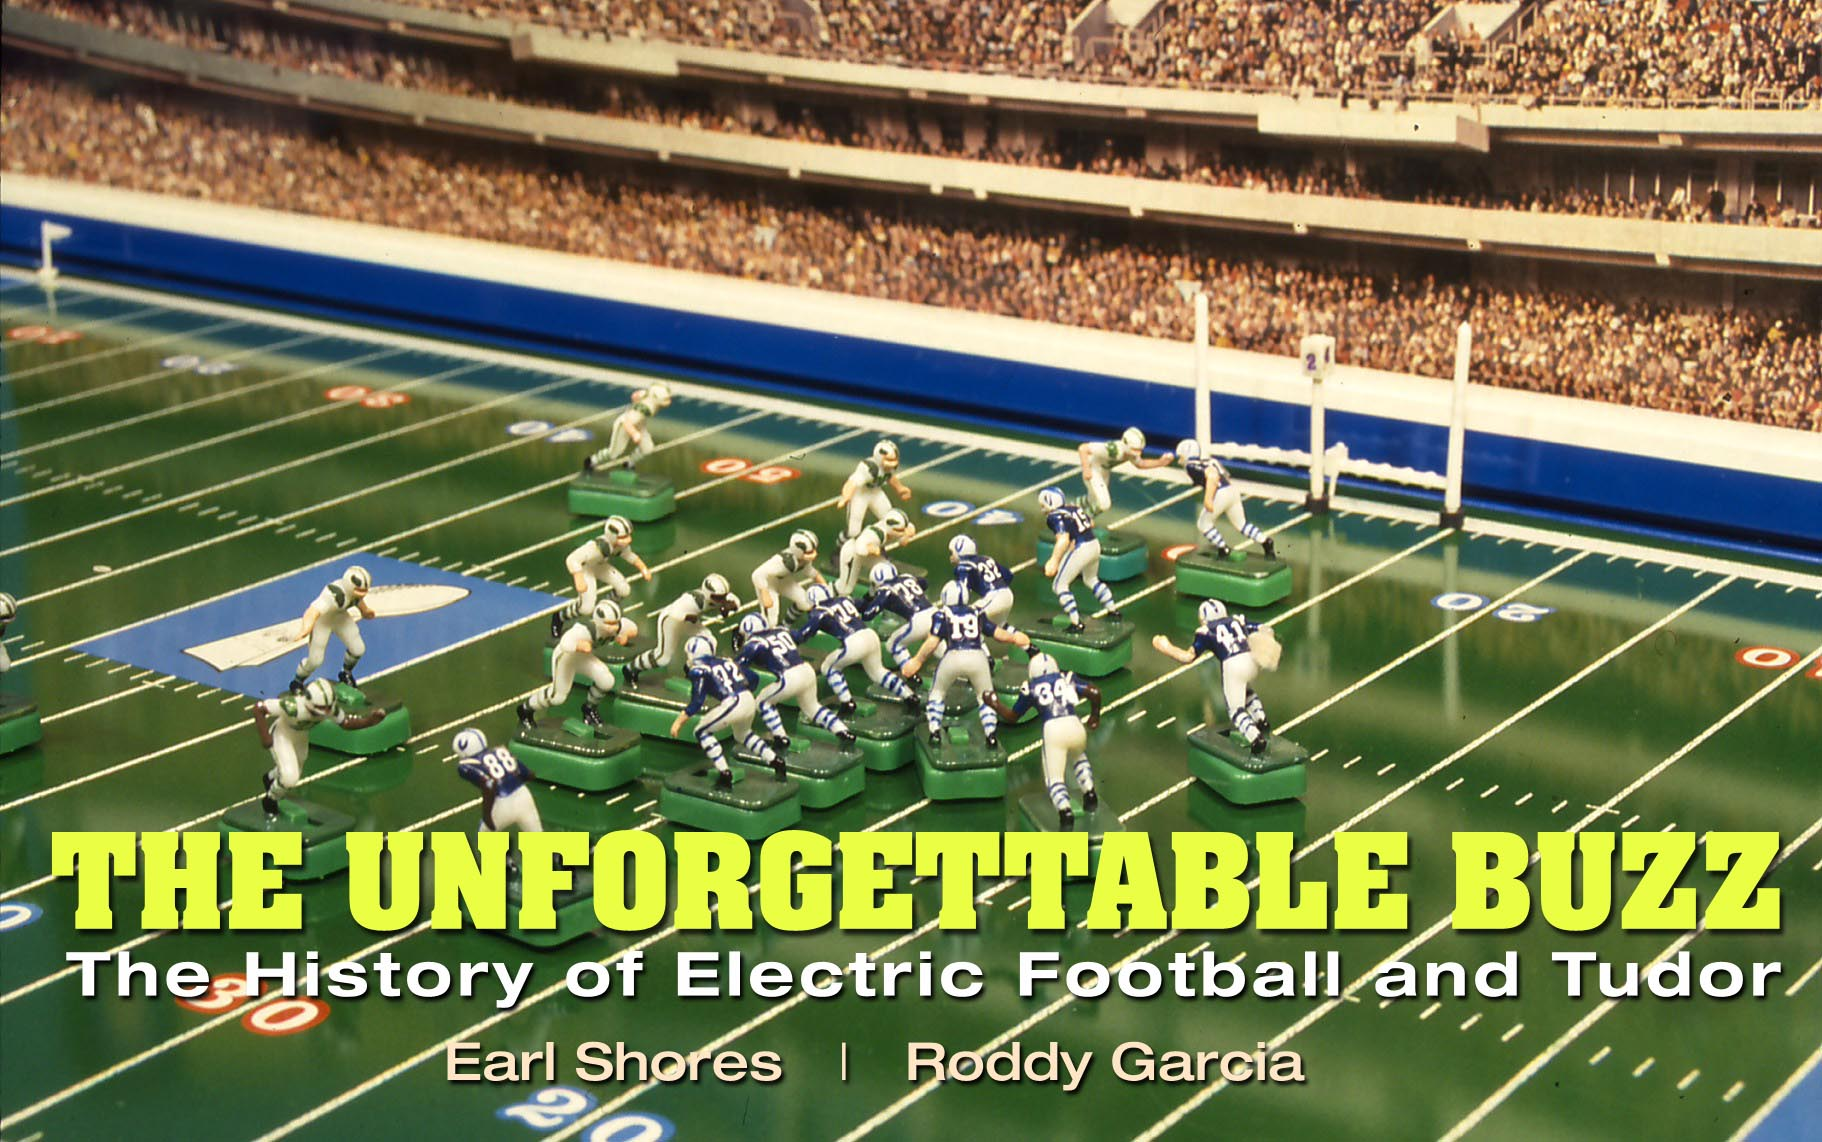 Electric Football book The Unforgettable Buzz